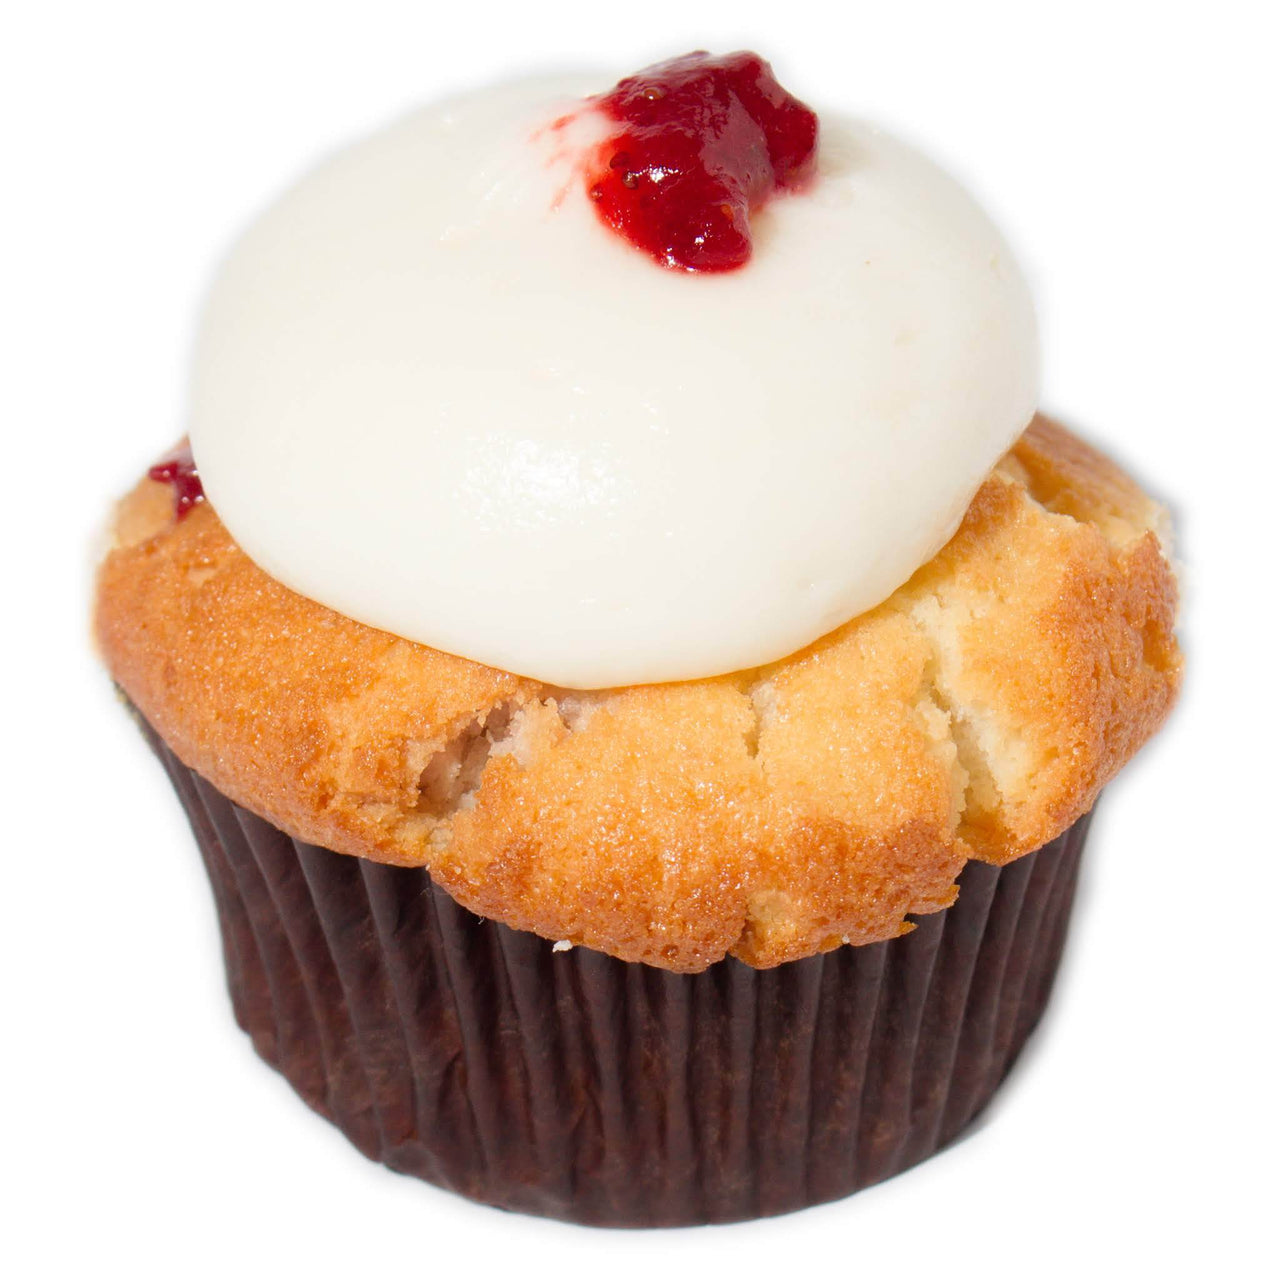 Strawberries & Cream Cupcake - Pickup Pickup